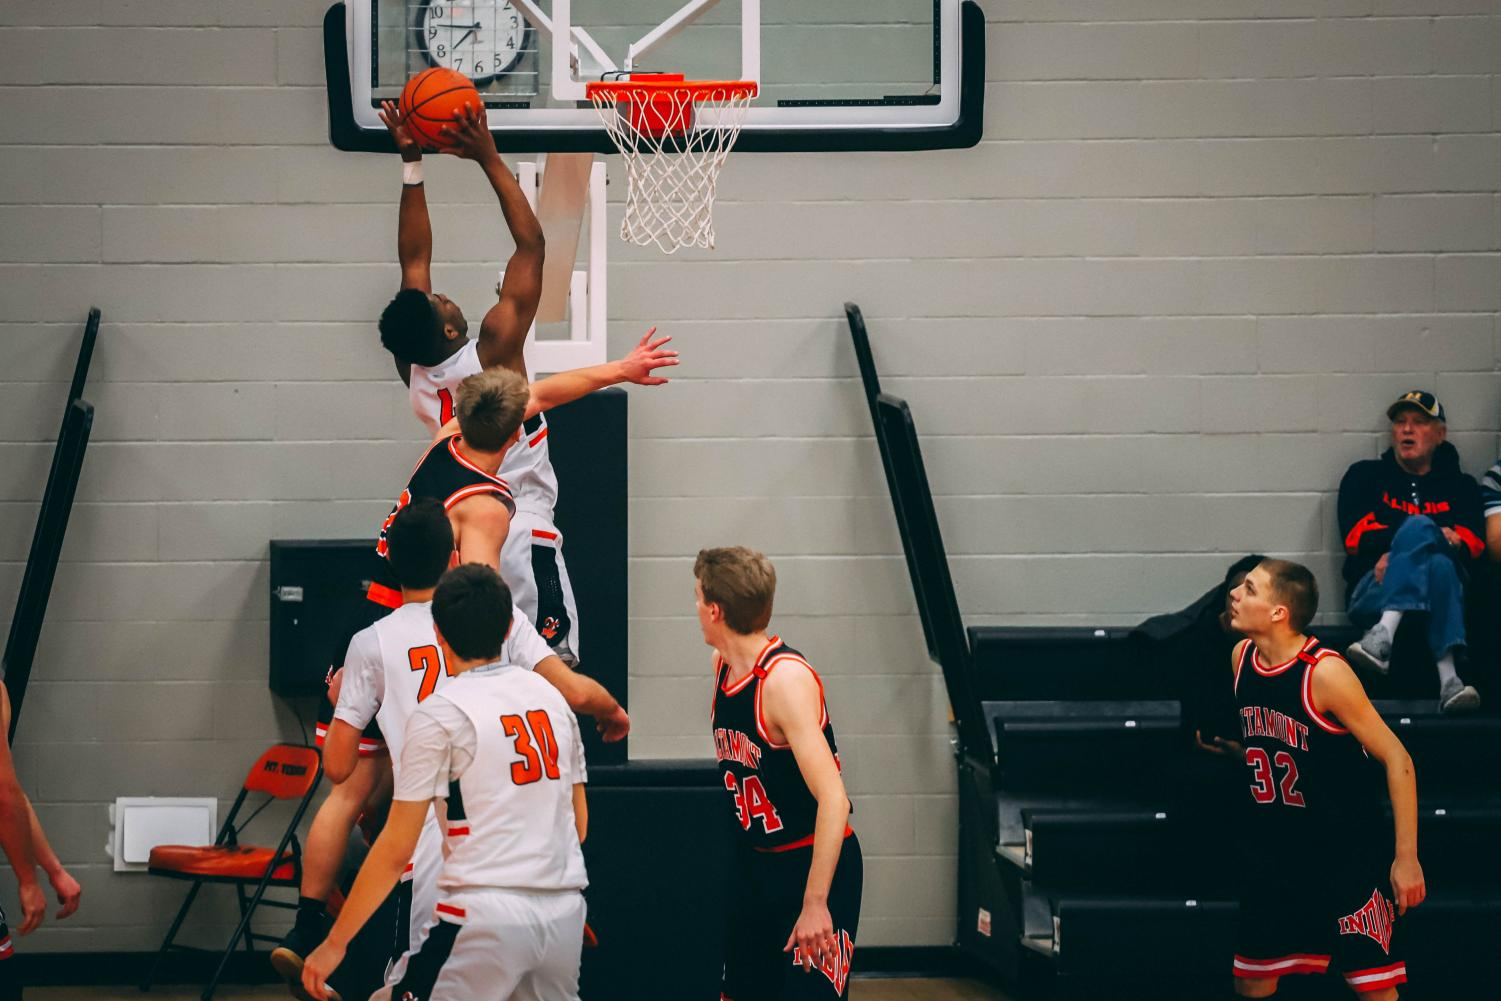 Amir Spann, '20 goes up for a dunk against the Altamont defender. Spann dominated that night with 28 points.